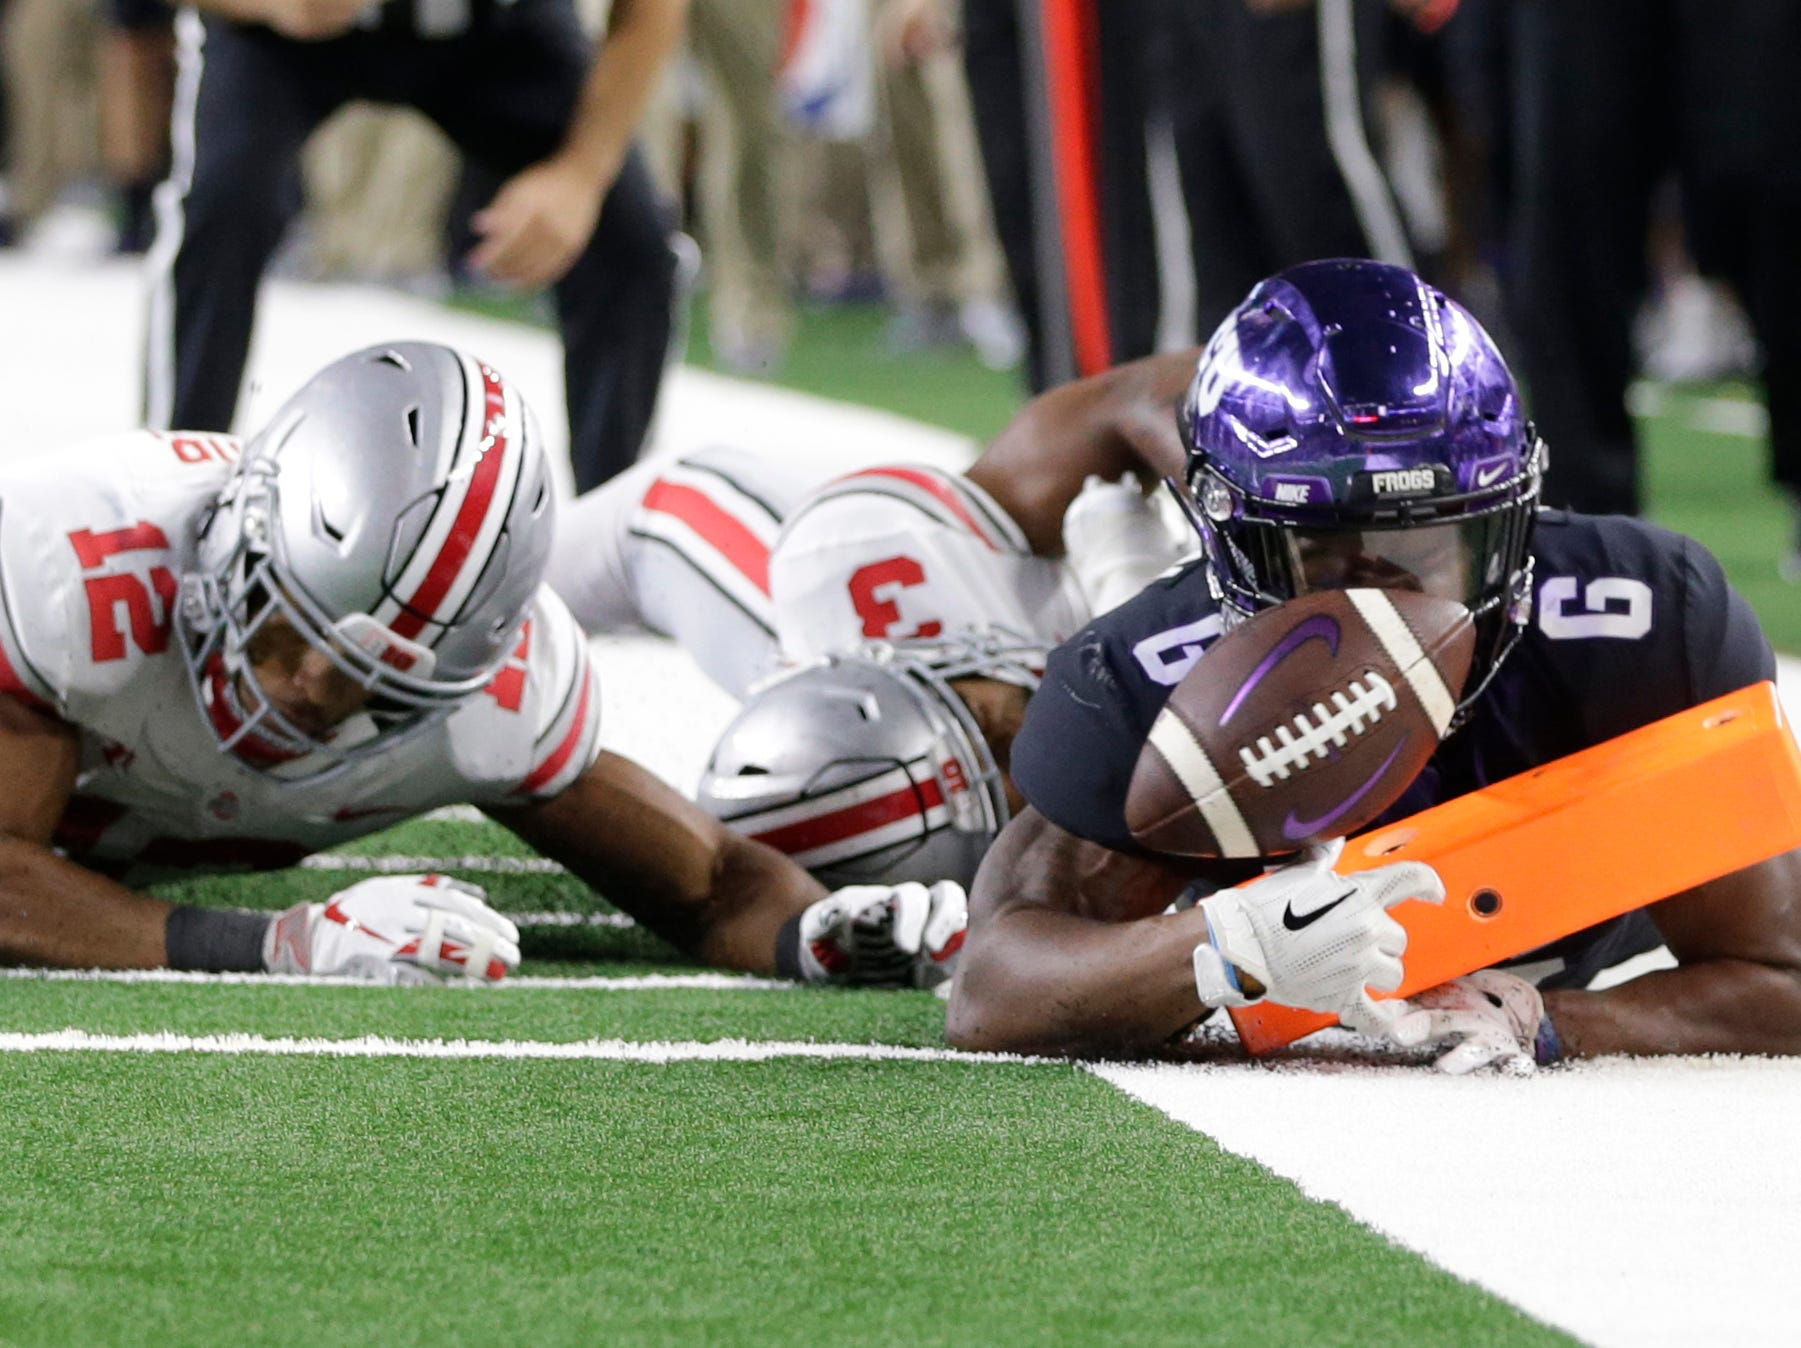 TCU Horned Frogs running back Darius Anderson (6) scores a touchdown against Ohio State Buckeyes cornerback Damon Arnette Jr. (3) in the third quarter at AT&T Stadium.